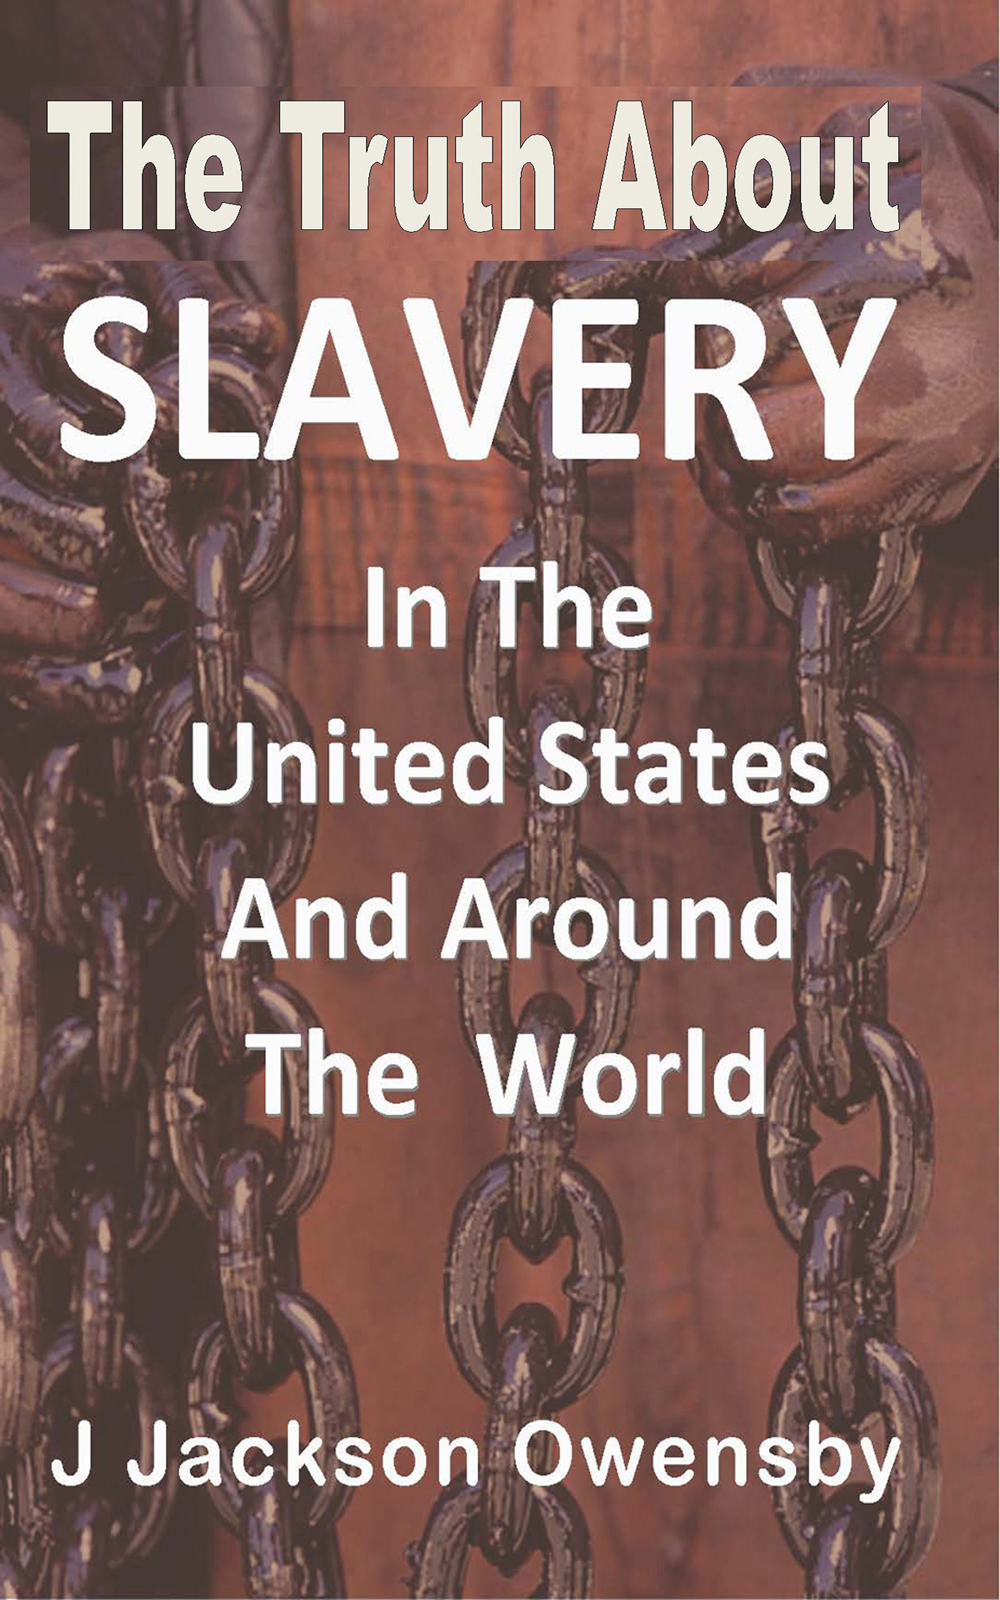 The Truth About Slavery in the United States and Around the World